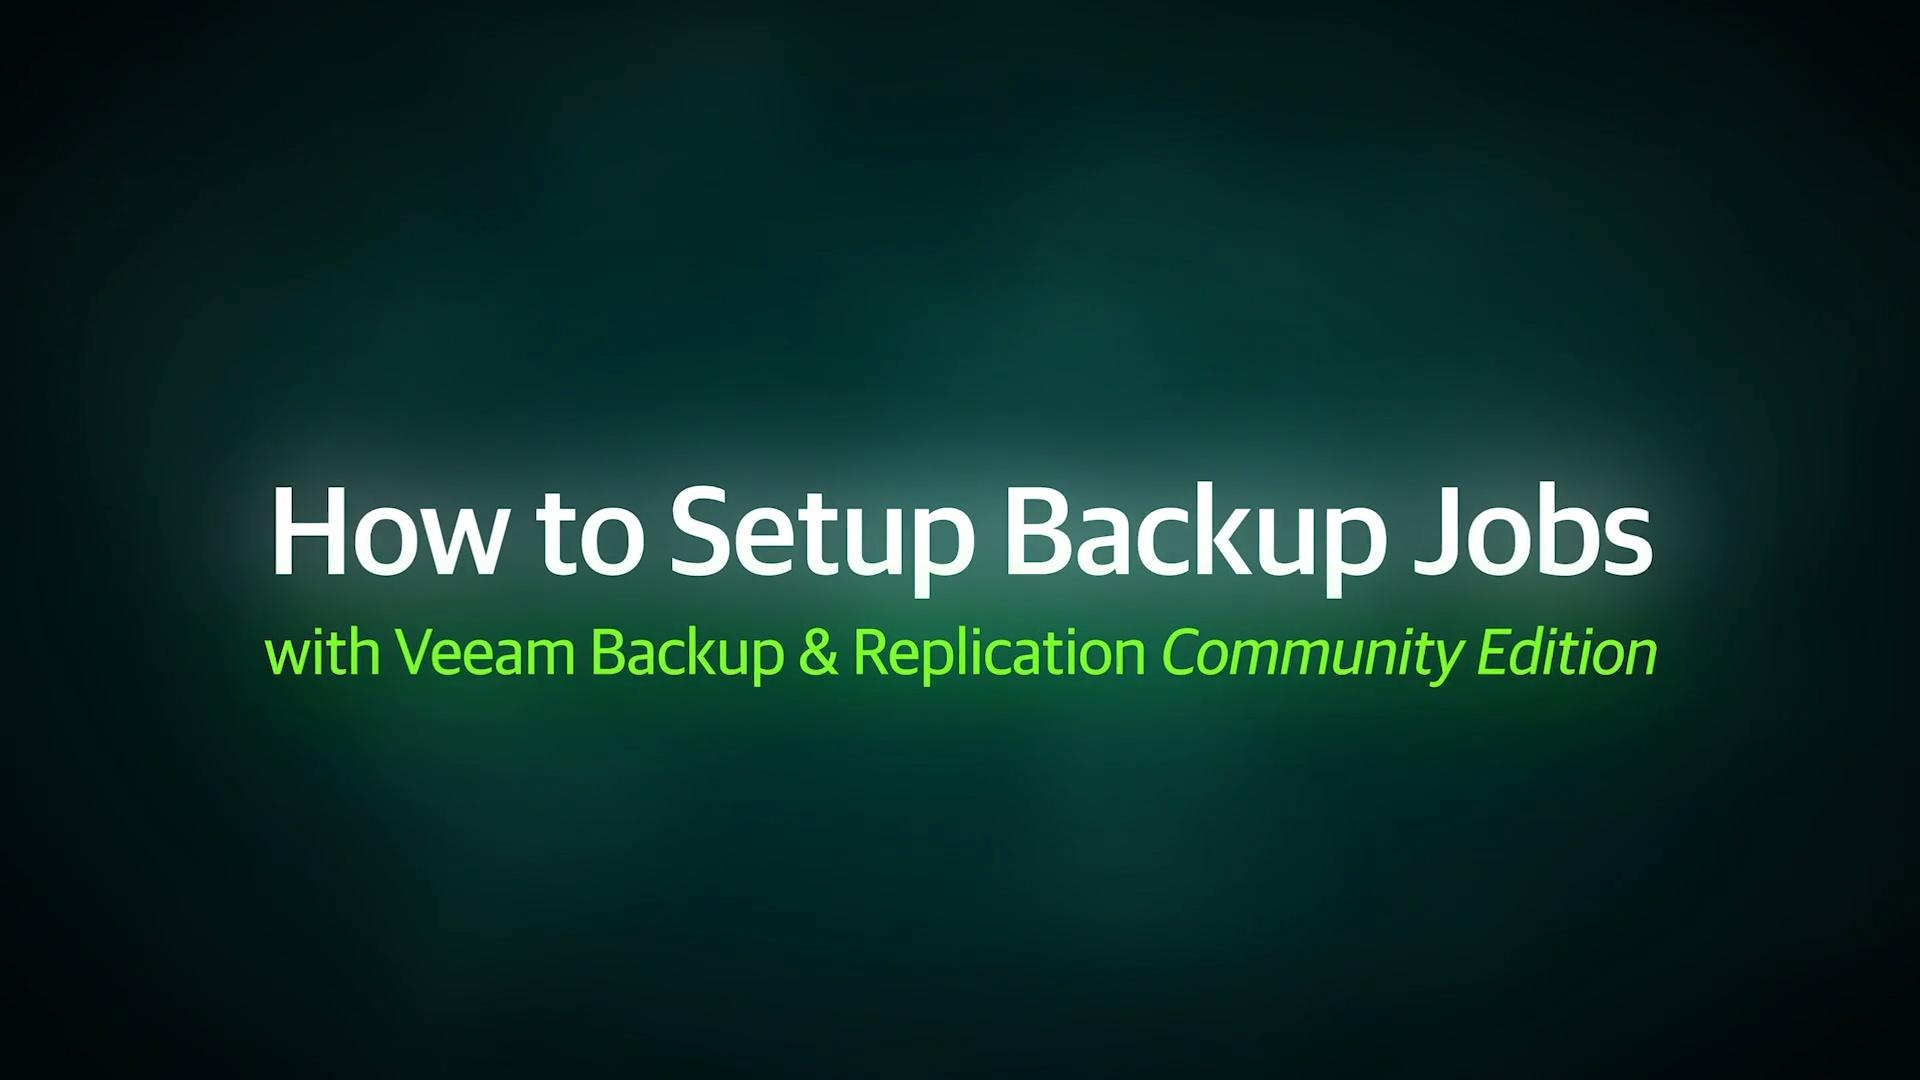 How to Setup Backup jobs with Veeam Backup & Replication Community Edition